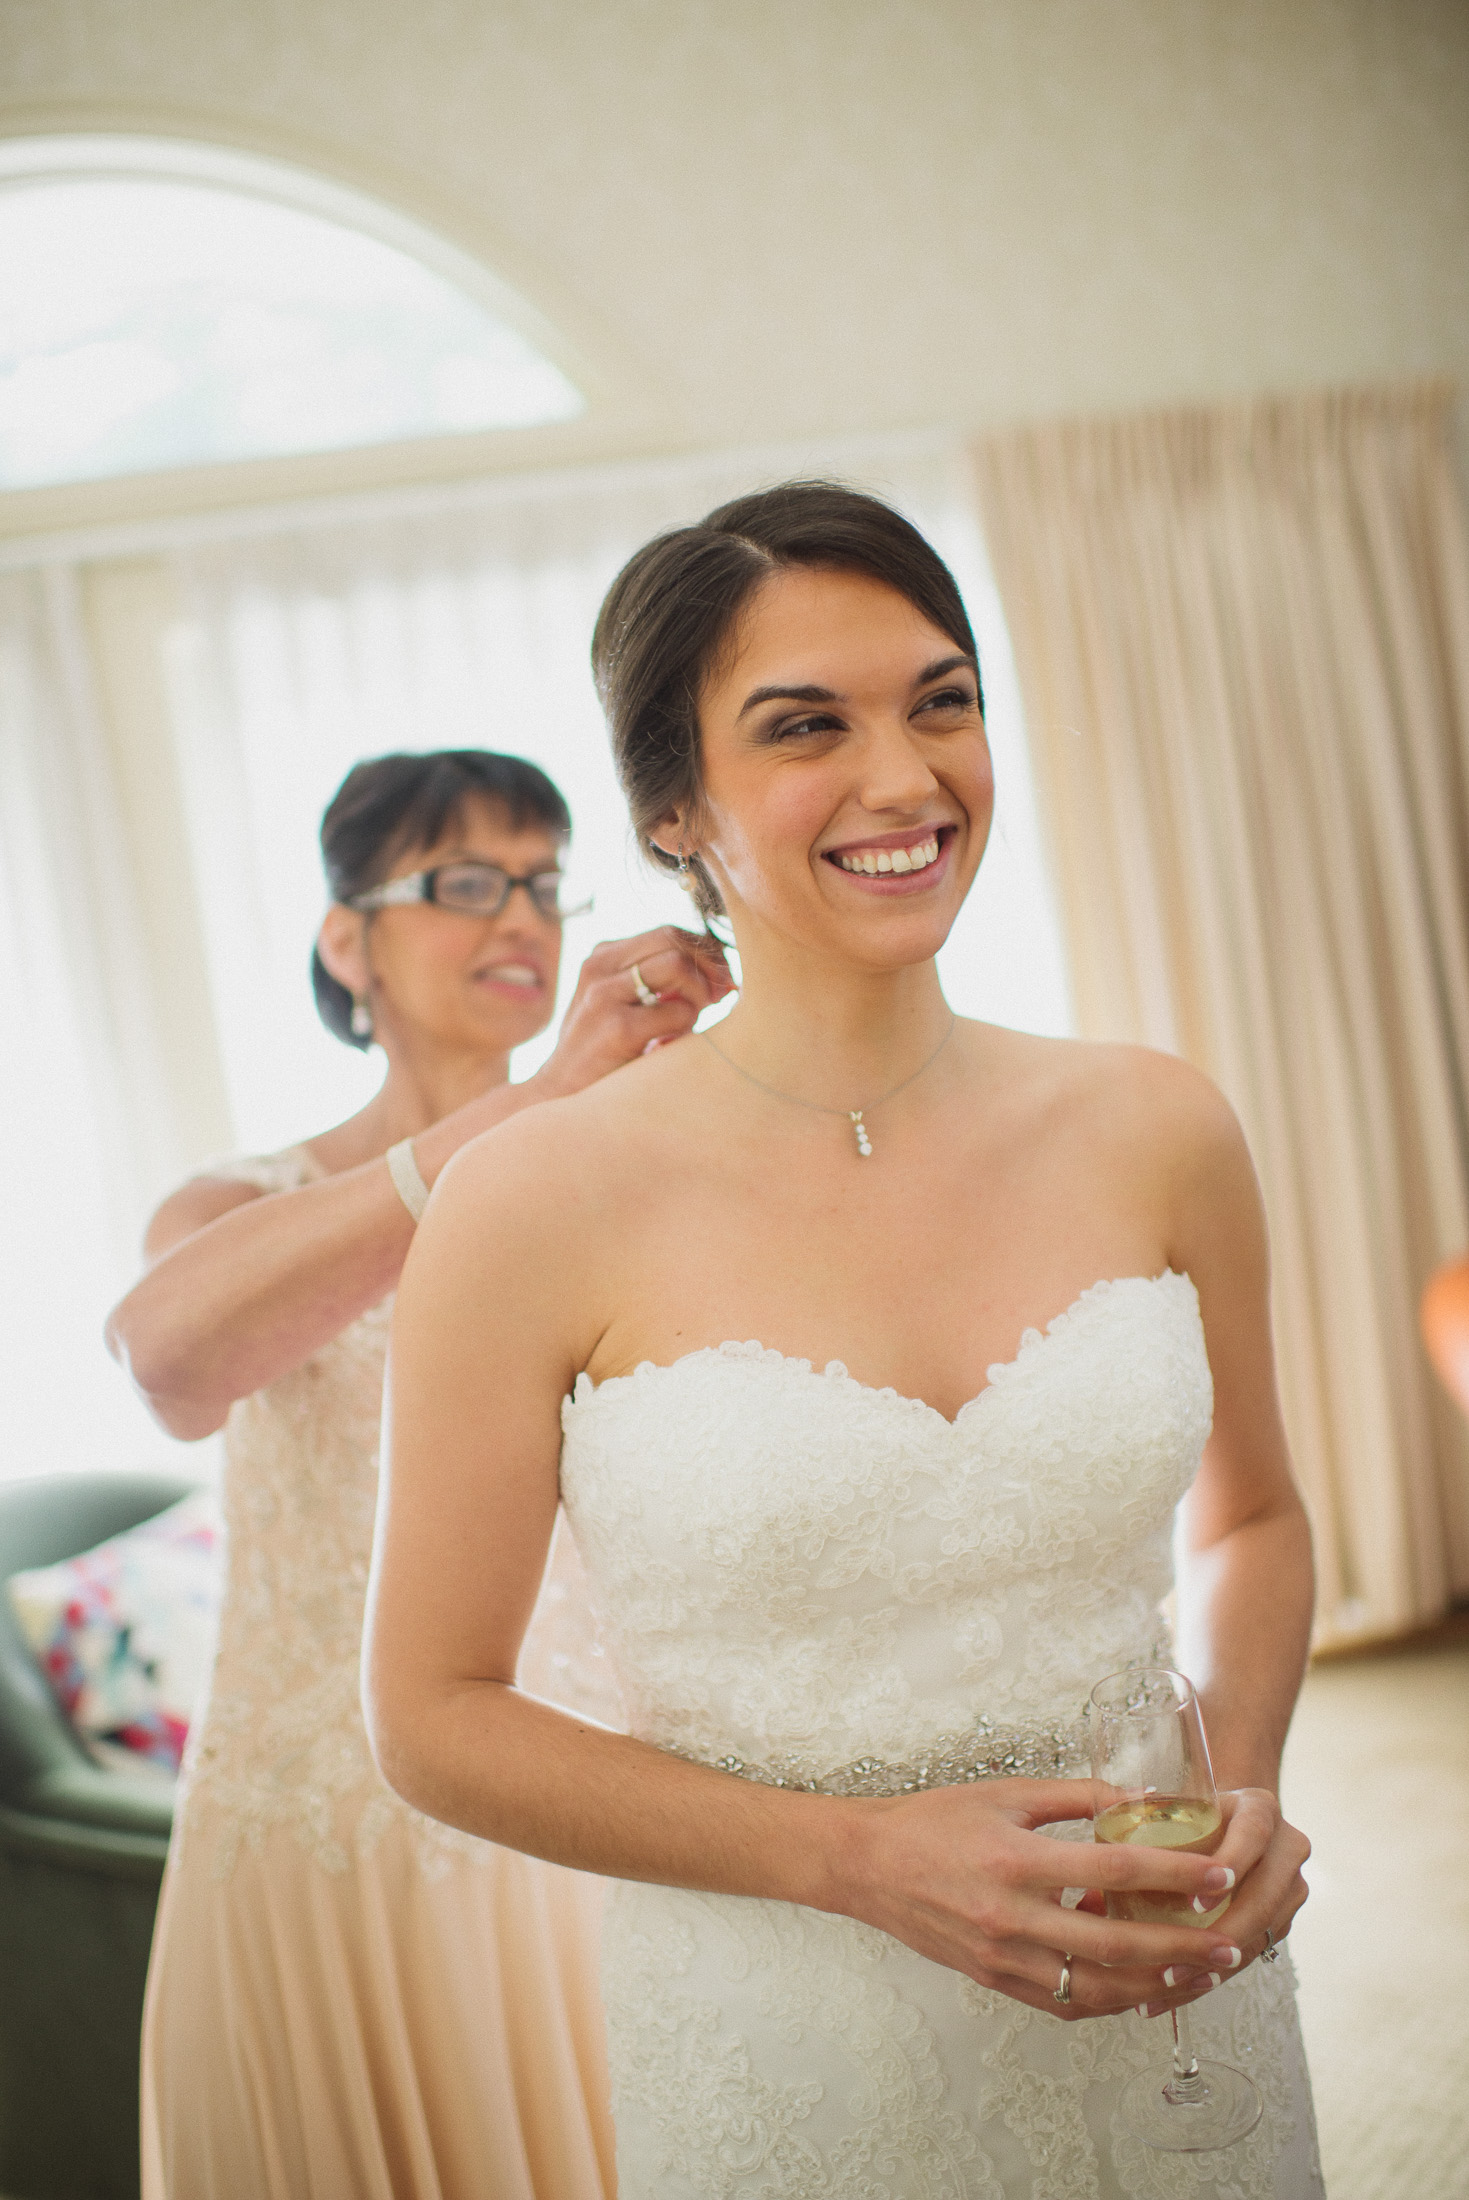 NH Wedding Photographer: mother putting on bride's necklace